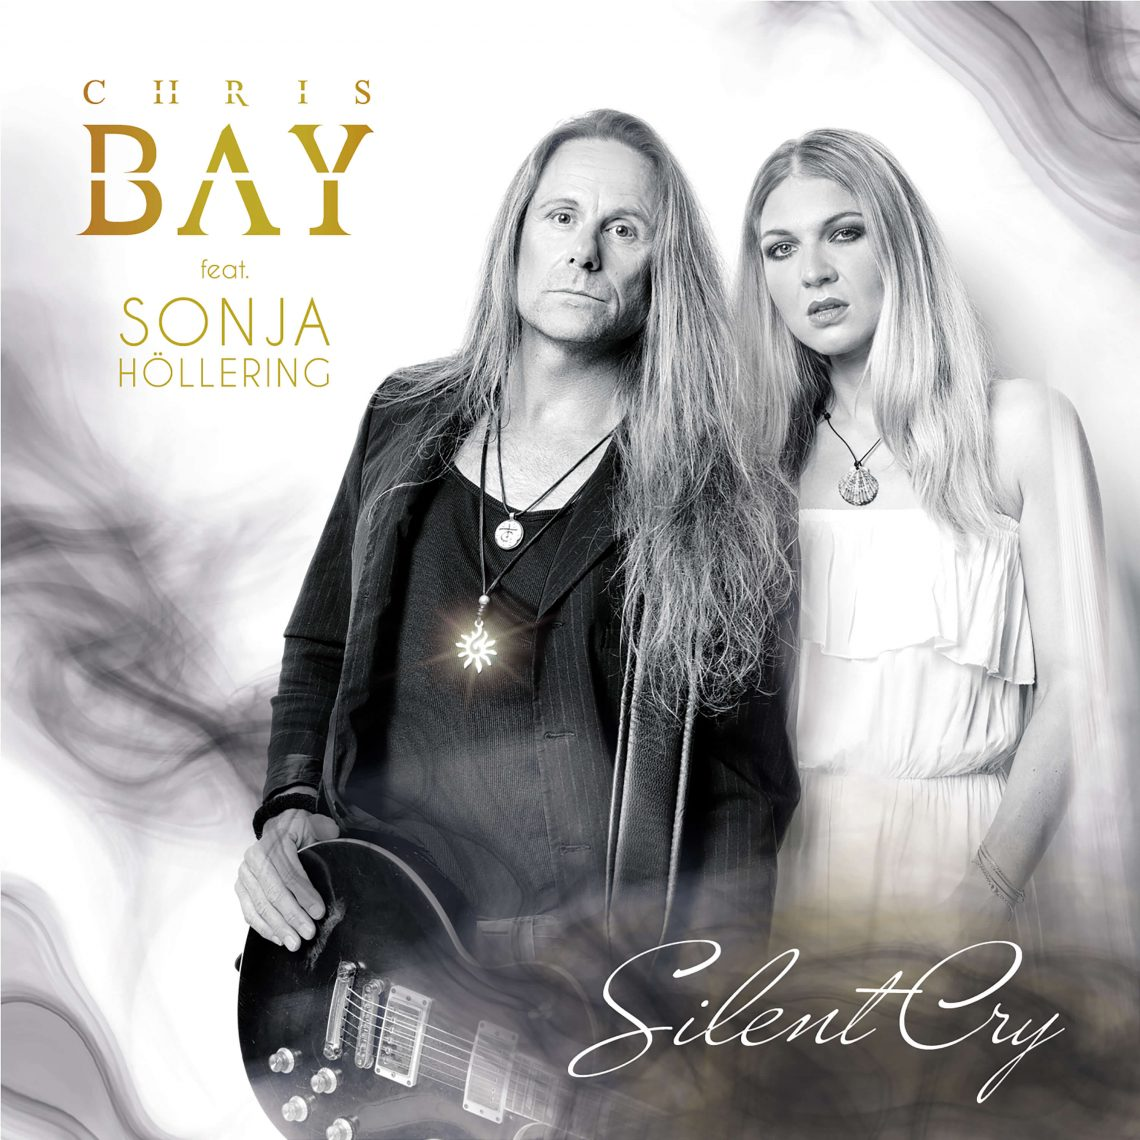 CHRIS BAY releases fourth single and video today!